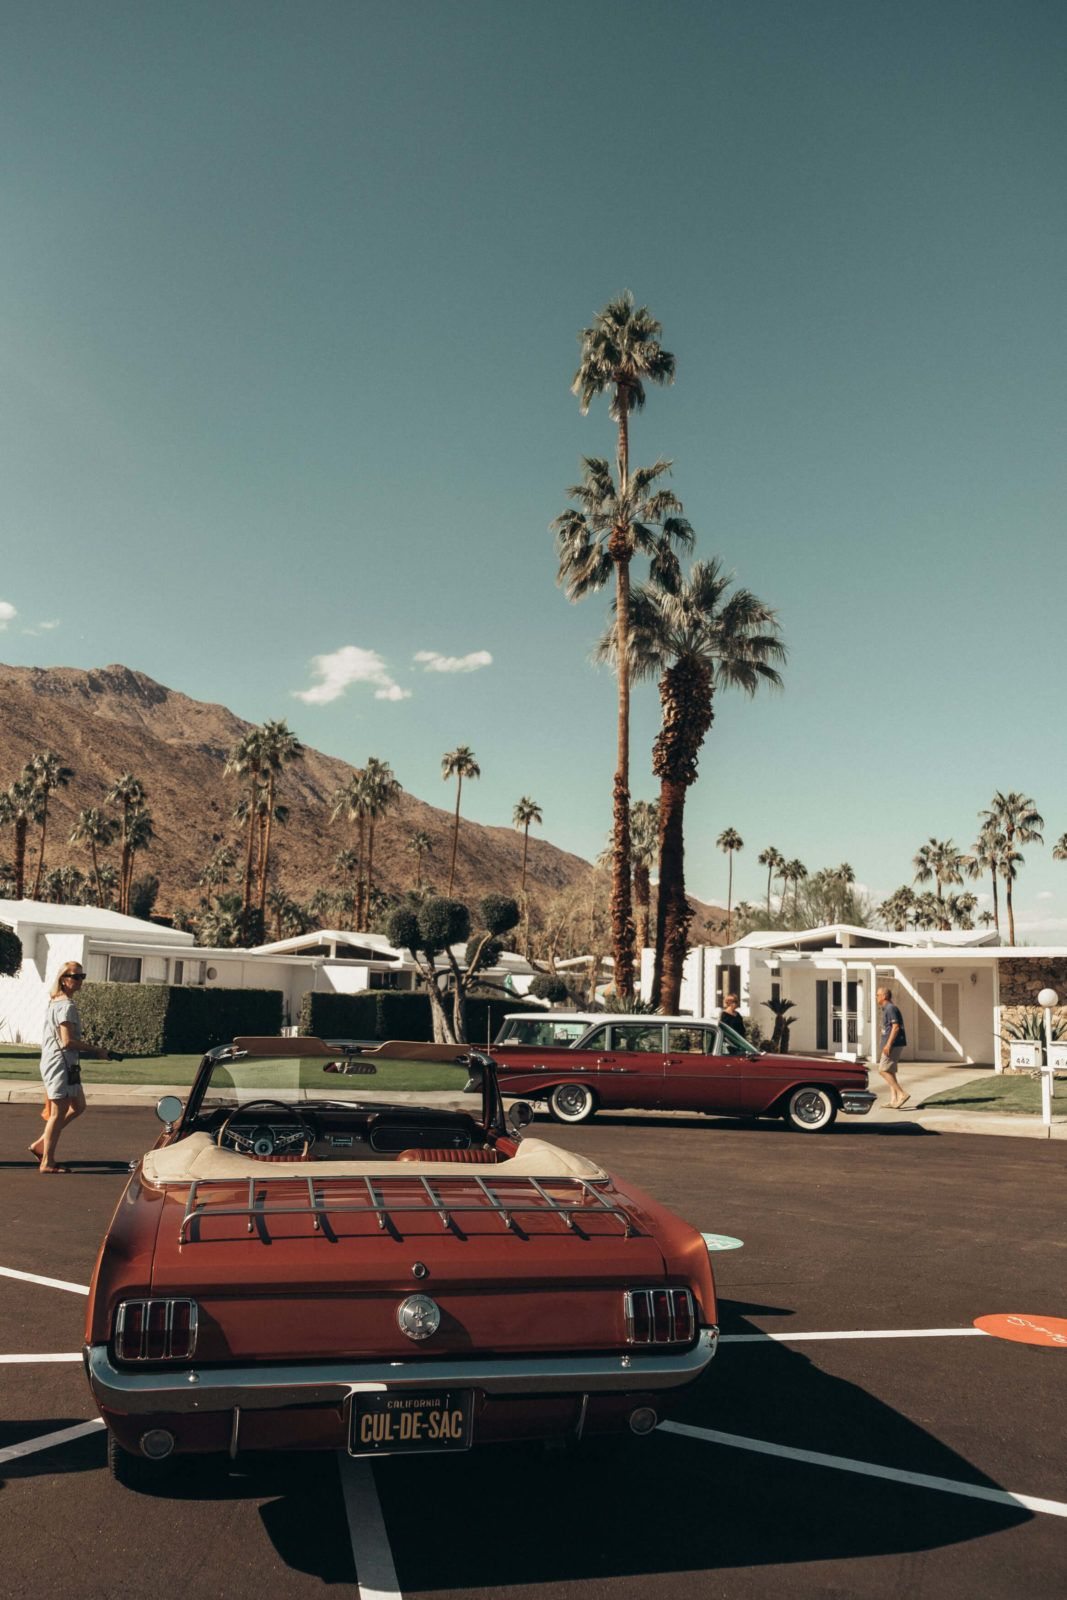 25 Photos to Inspire You to Attend Modernism Week